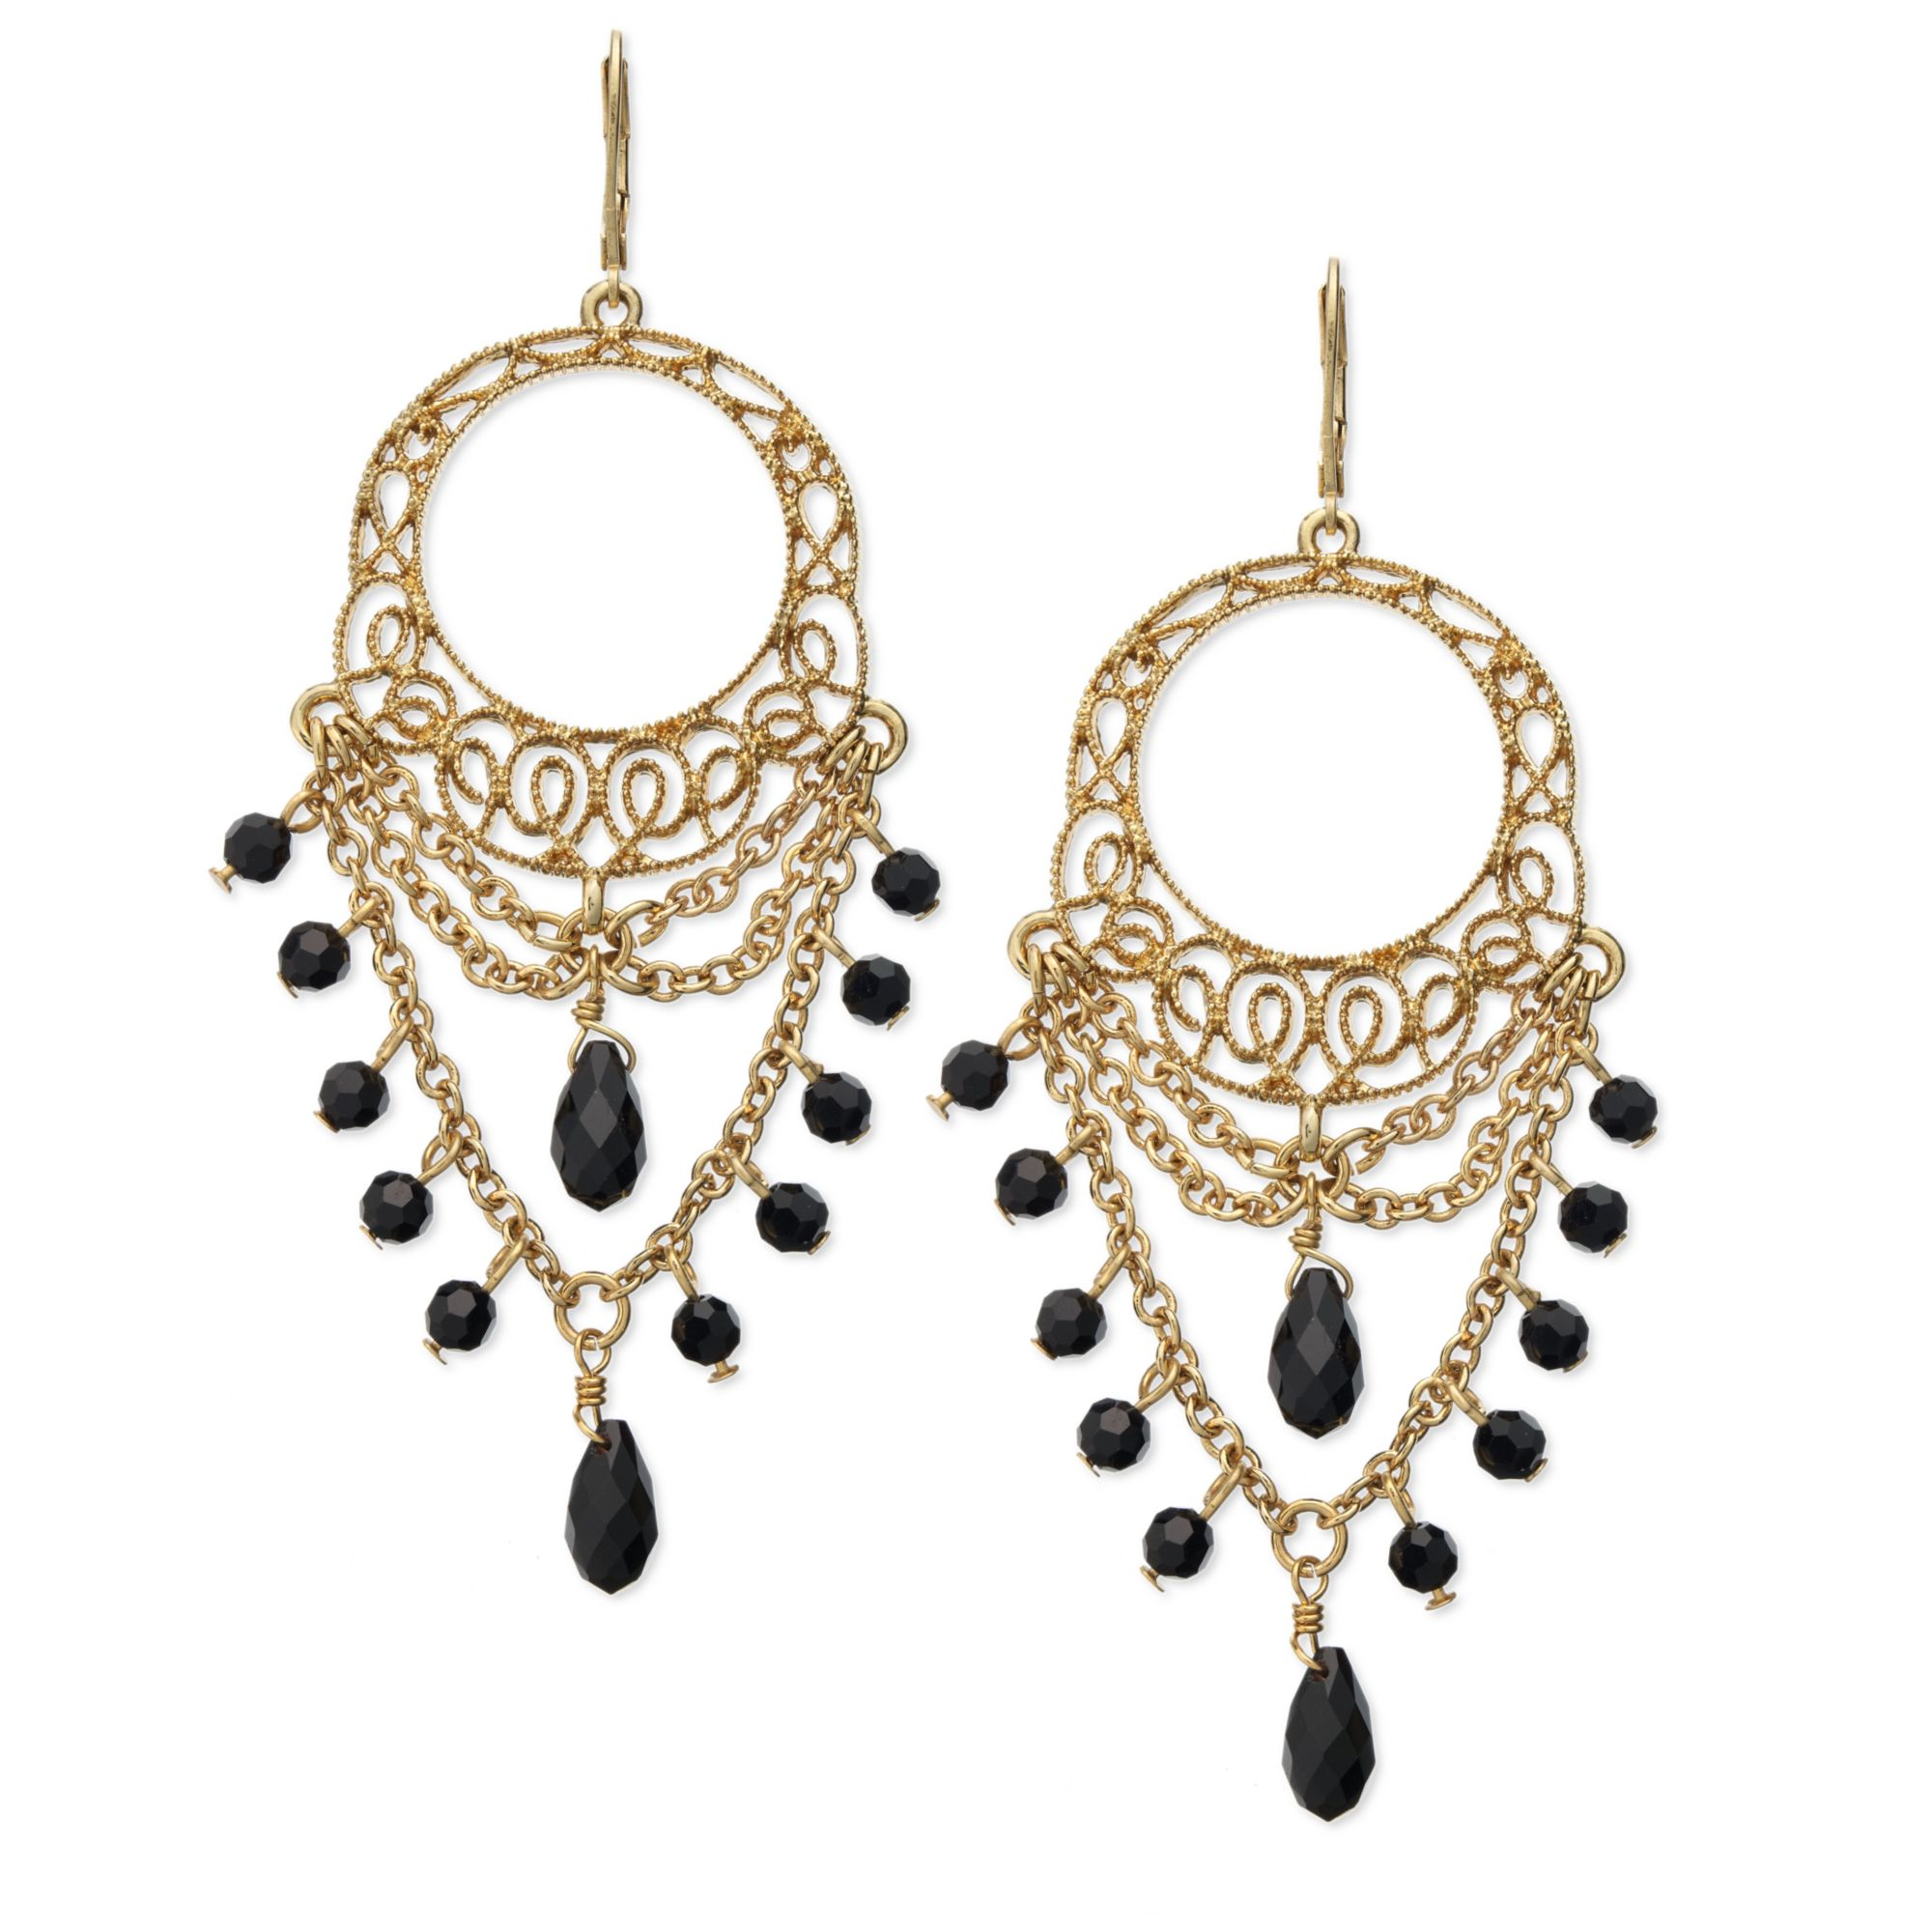 Lauren by ralph lauren Goldtone Openwork Lace and Jet Bead – Gold Tone Chandelier Earrings